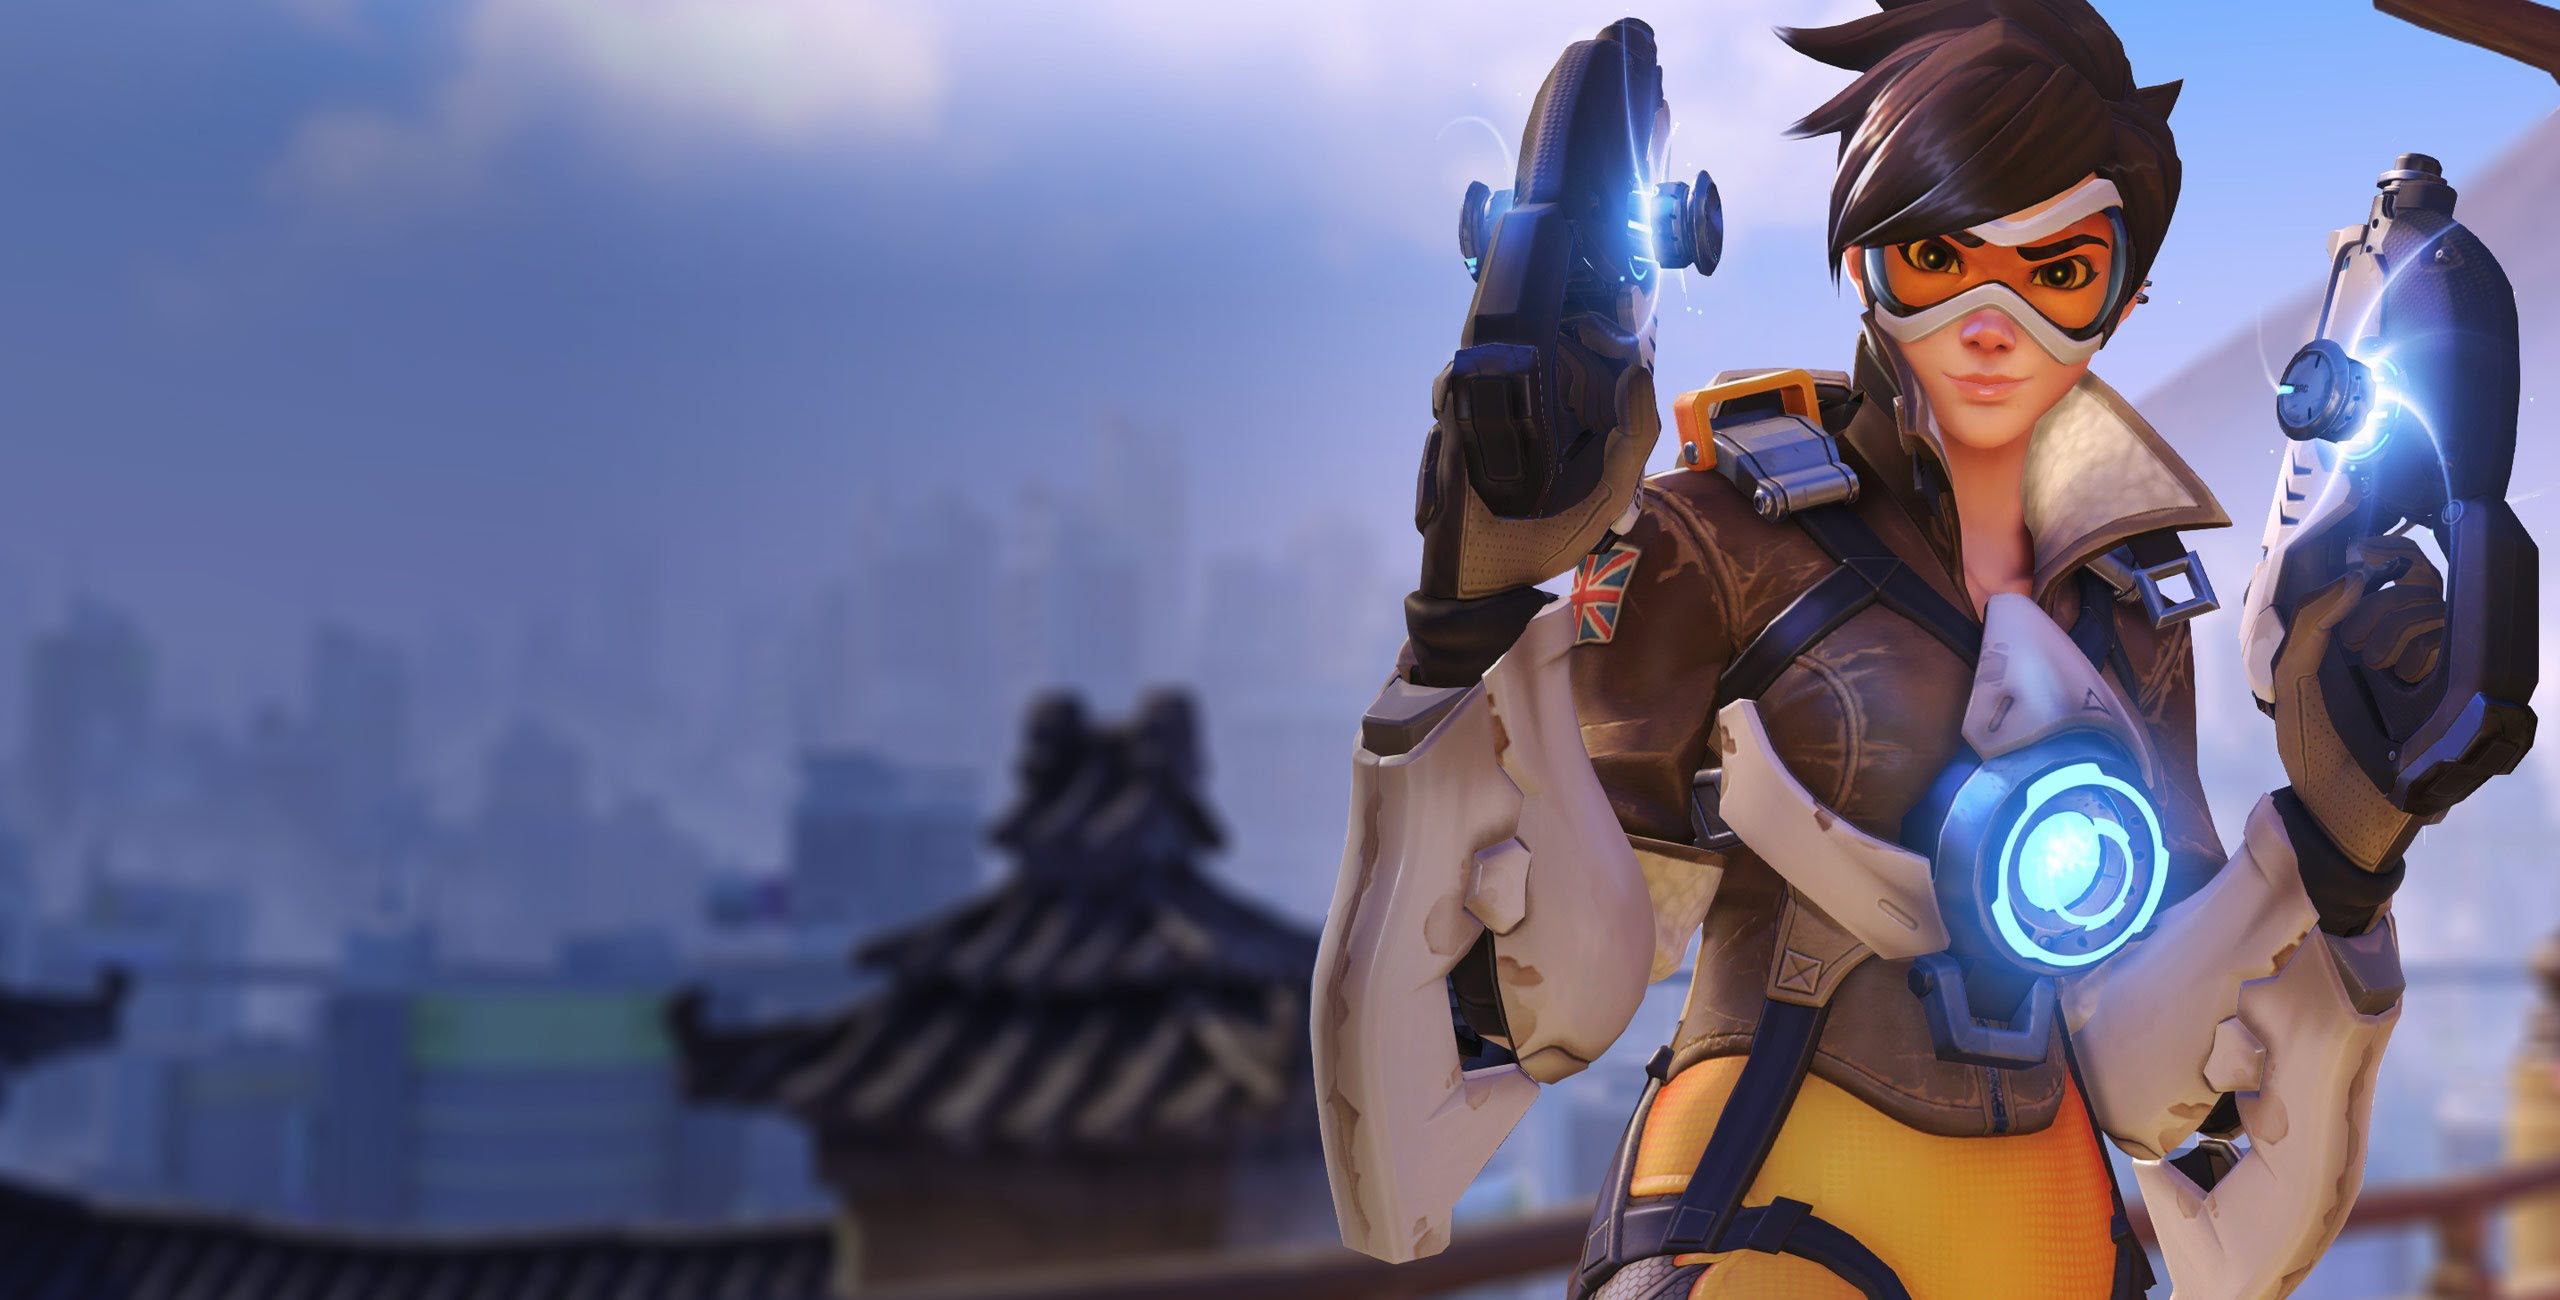 Tracer Blizzard S Overwatch 壁紙 39681572 ファンポップ